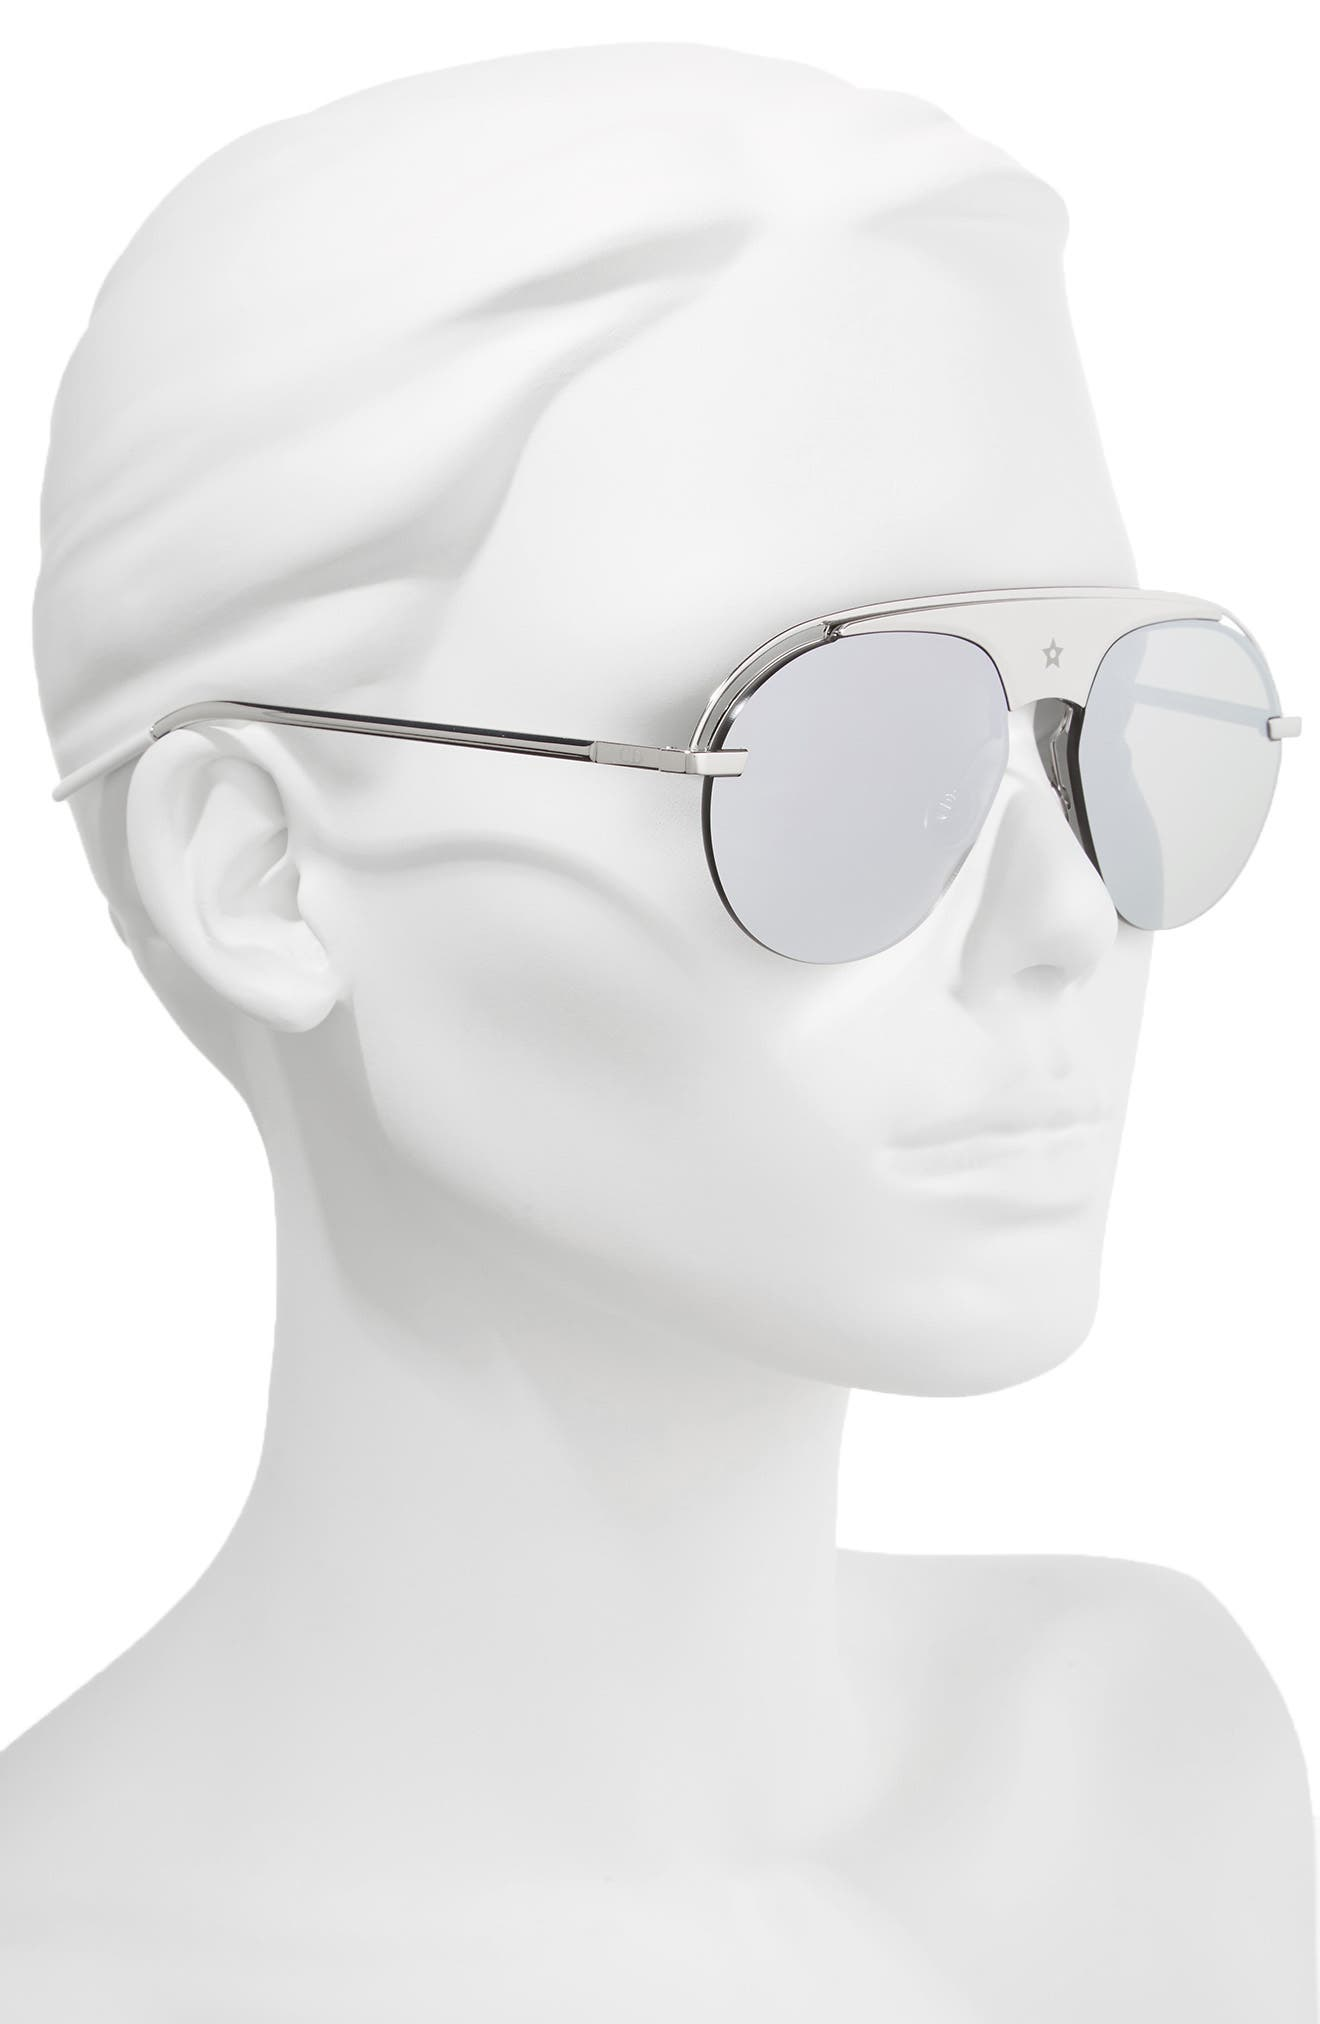 Evolution 2 60mm Aviator Sunglasses,                             Alternate thumbnail 2, color,                             Palladium